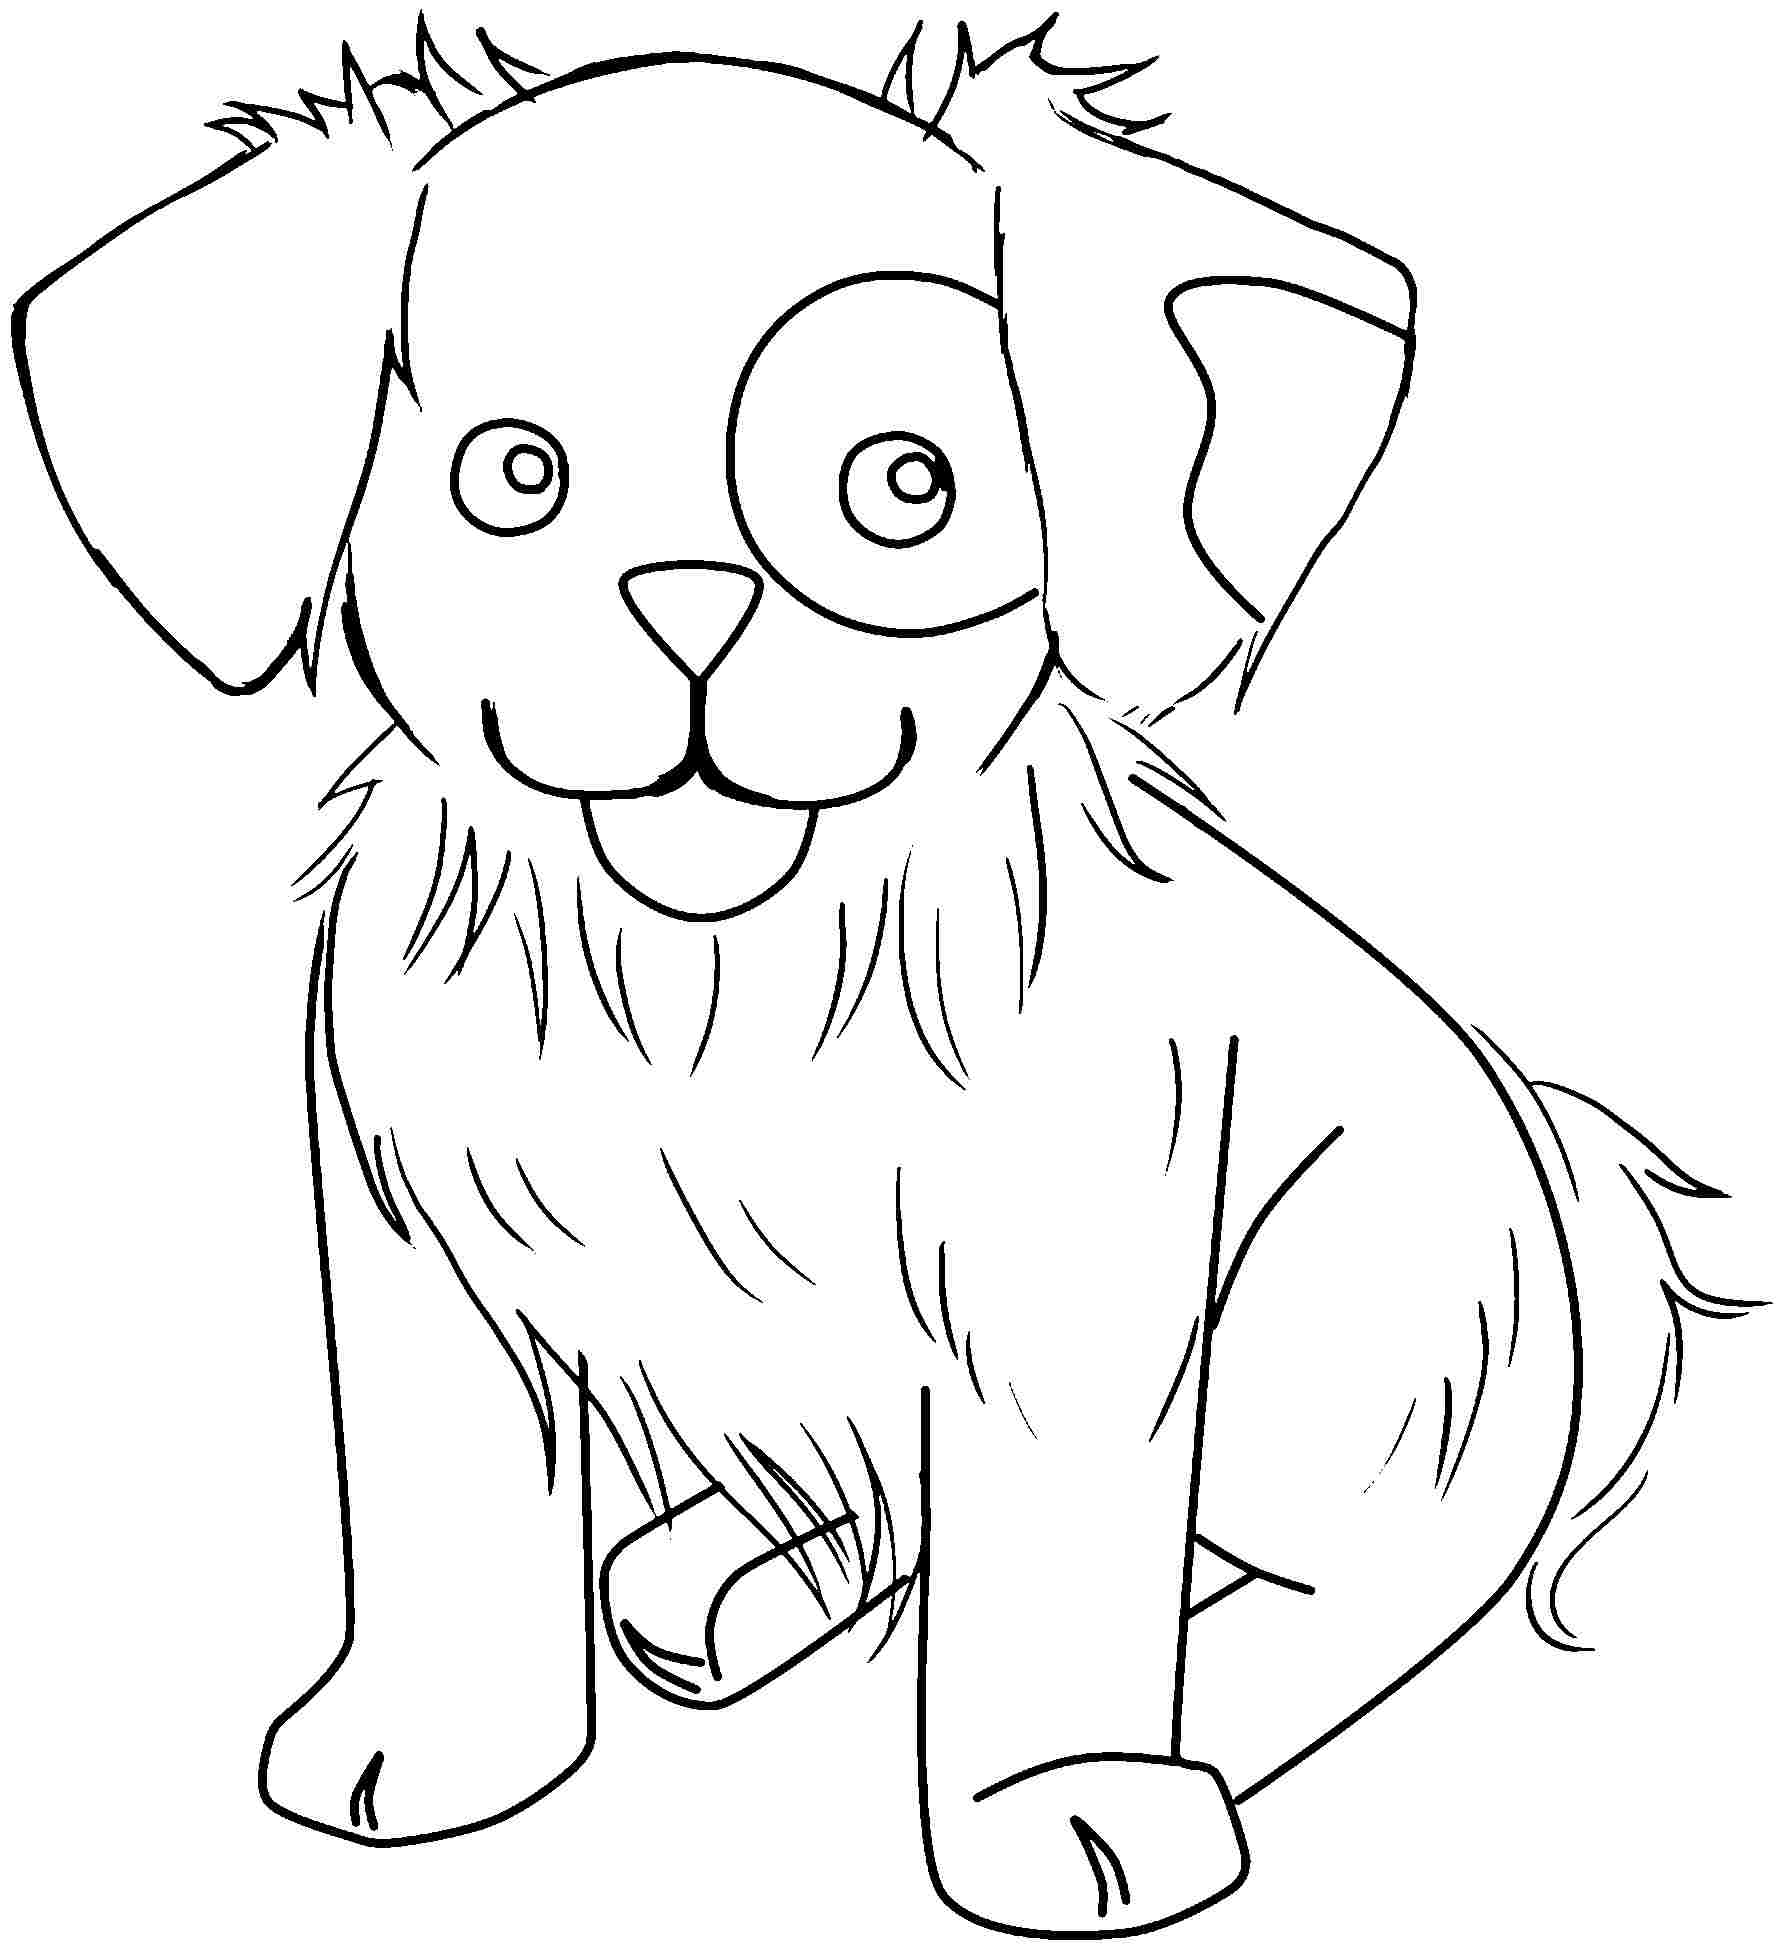 Free Printable Cute Animal Coloring Pages Coloring Home